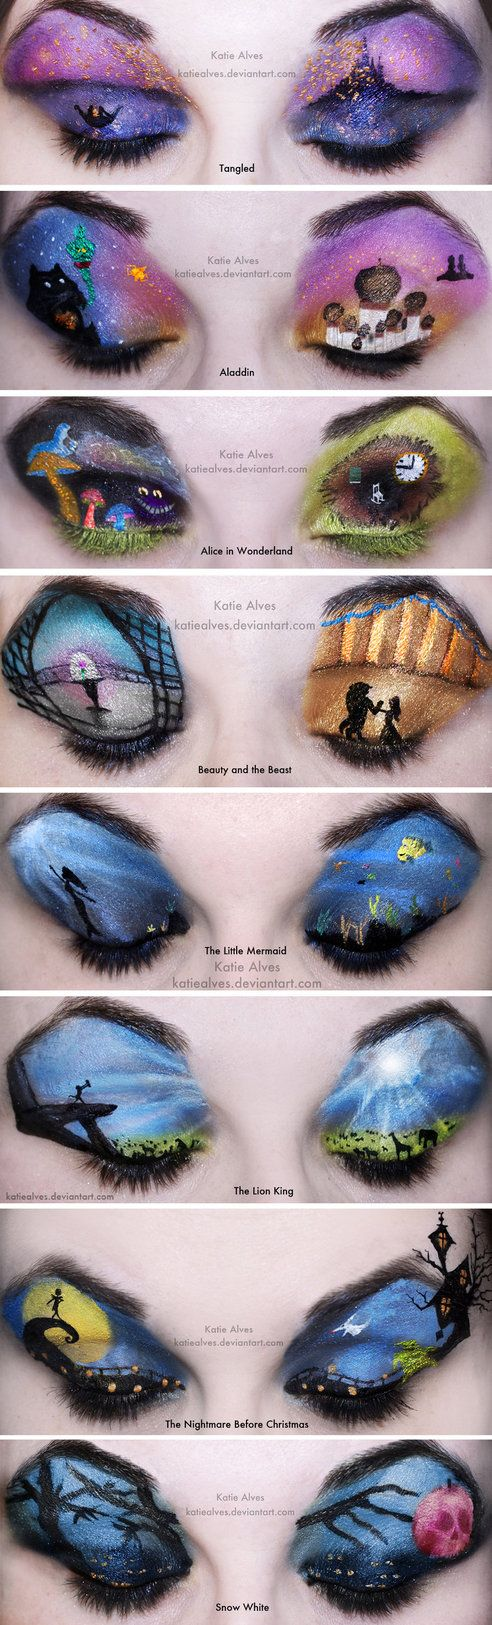 Disney make up collection by Katie Alves , wish i could do something like this , she's very talented!